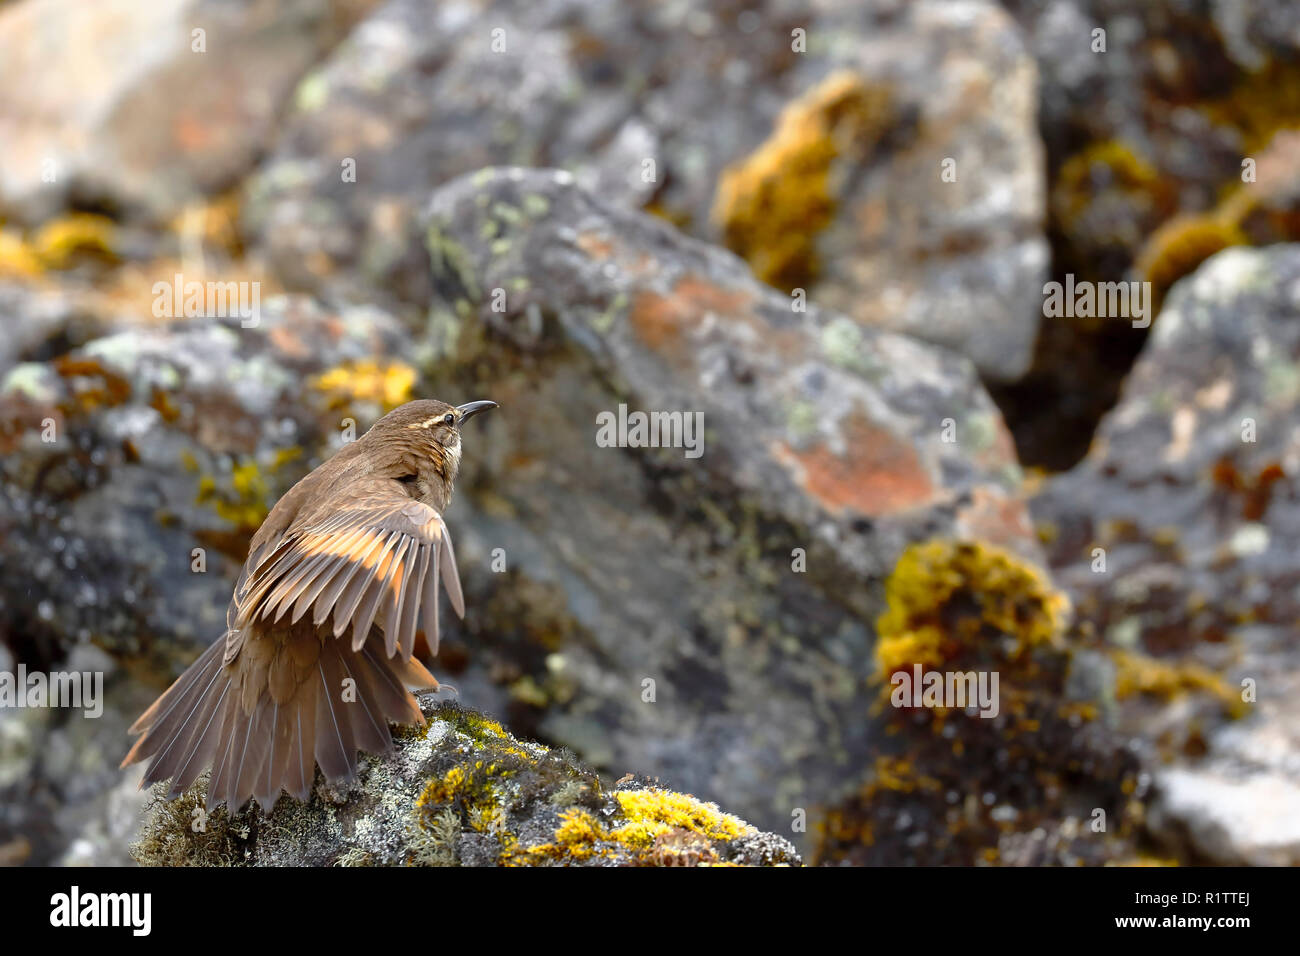 Beautiful specimen of Royal cinclodes (Cinclodes aricomae) that is in critical danger of extinction, perched on a rock stretching its wings in its nat - Stock Image